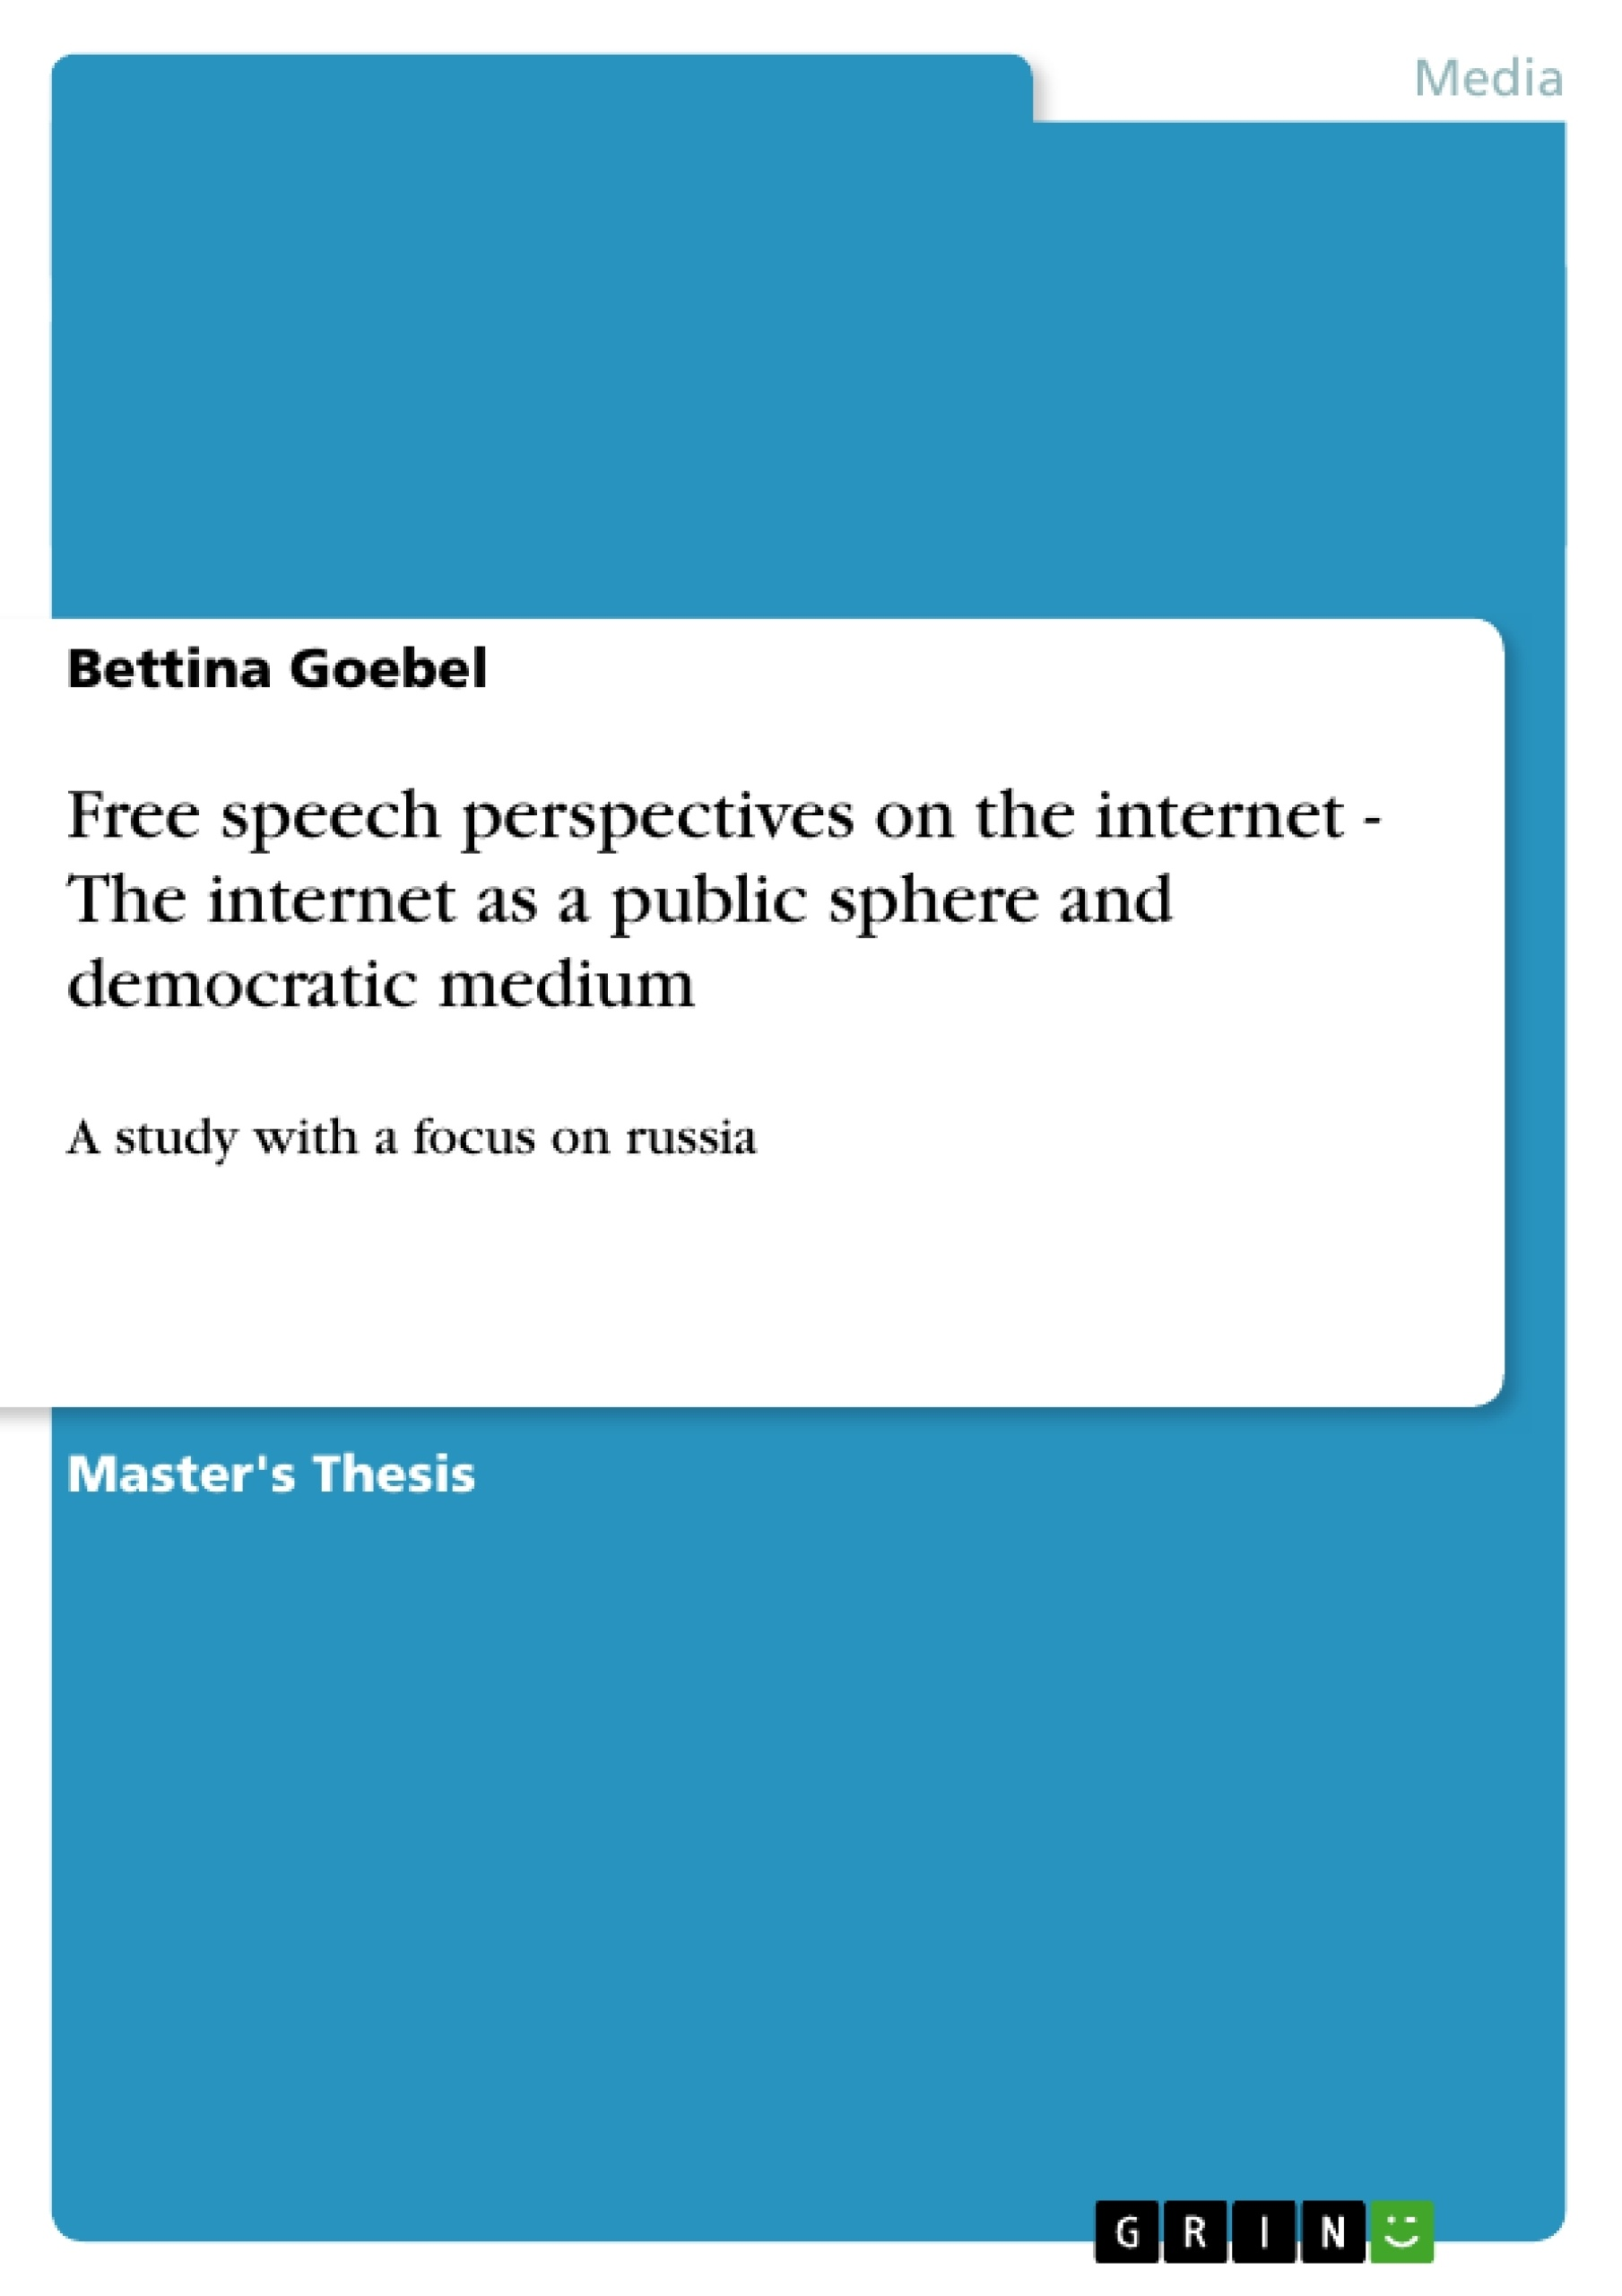 Title: Free speech perspectives on the internet - The internet as a public sphere and democratic medium